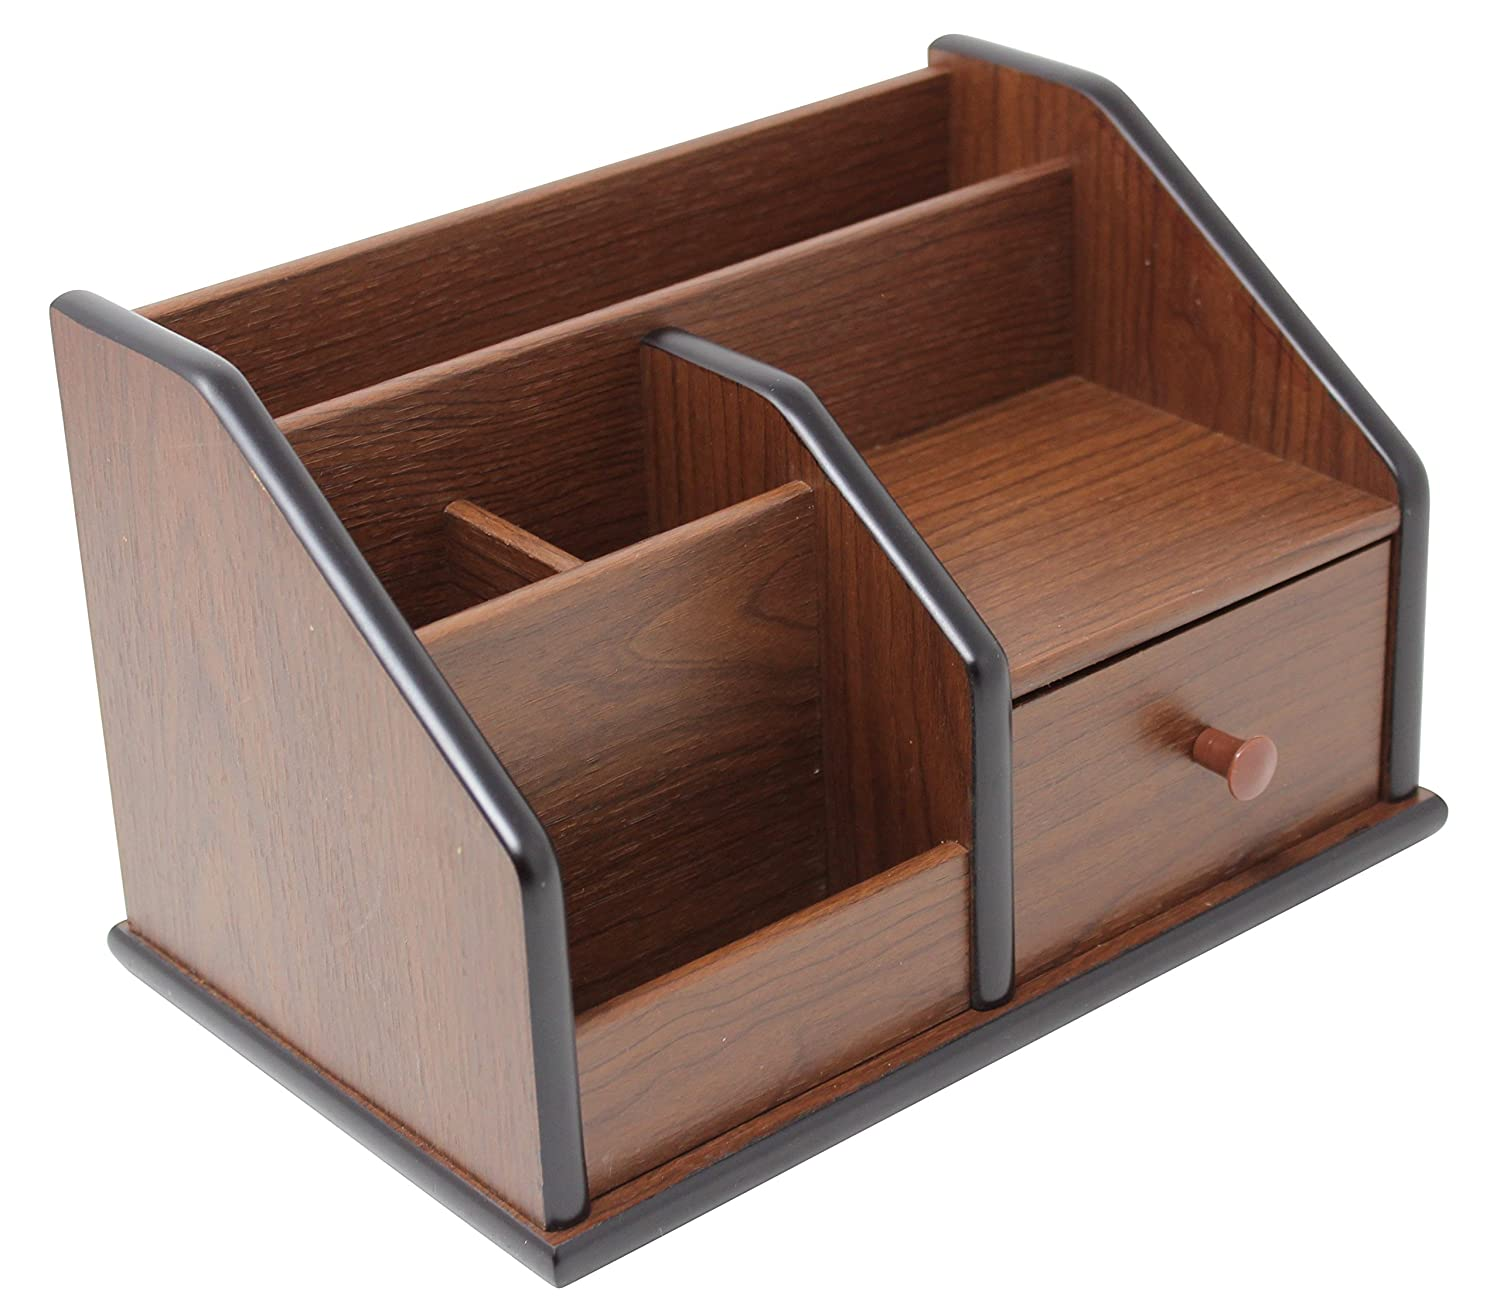 Office Organizer Multiple Supplies Accessories Image 1